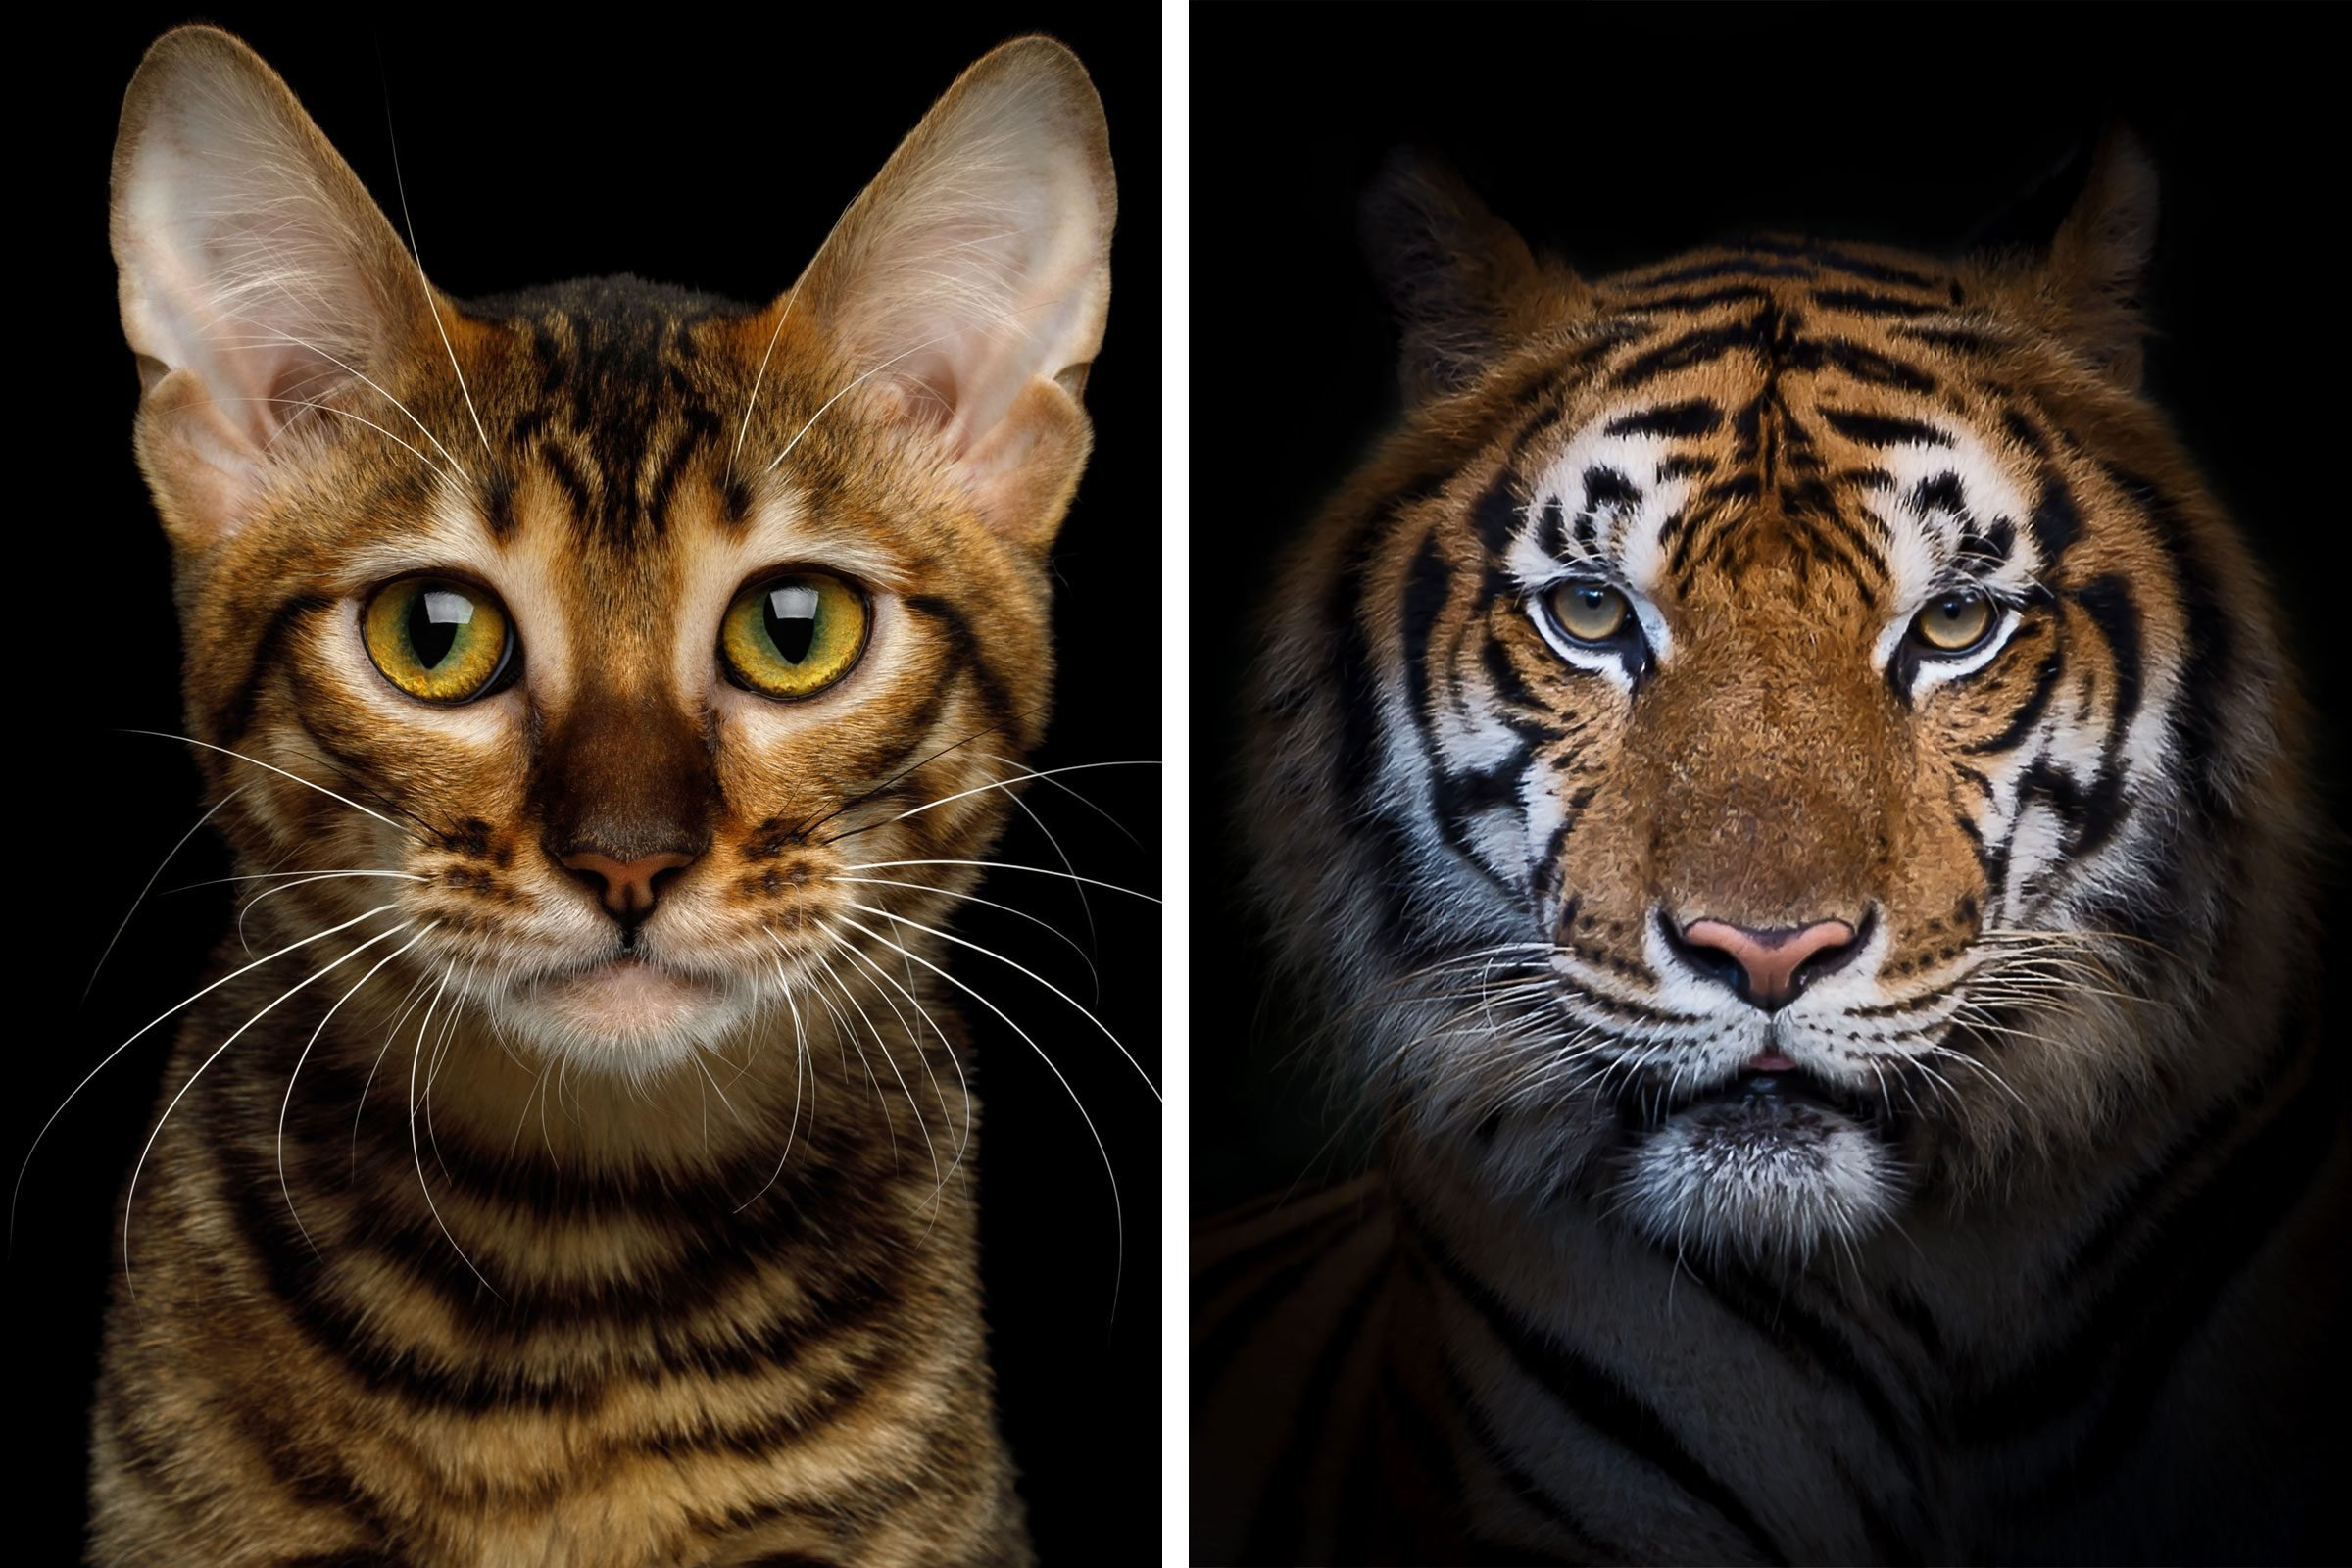 a side by side comparison of a cat and a tiger